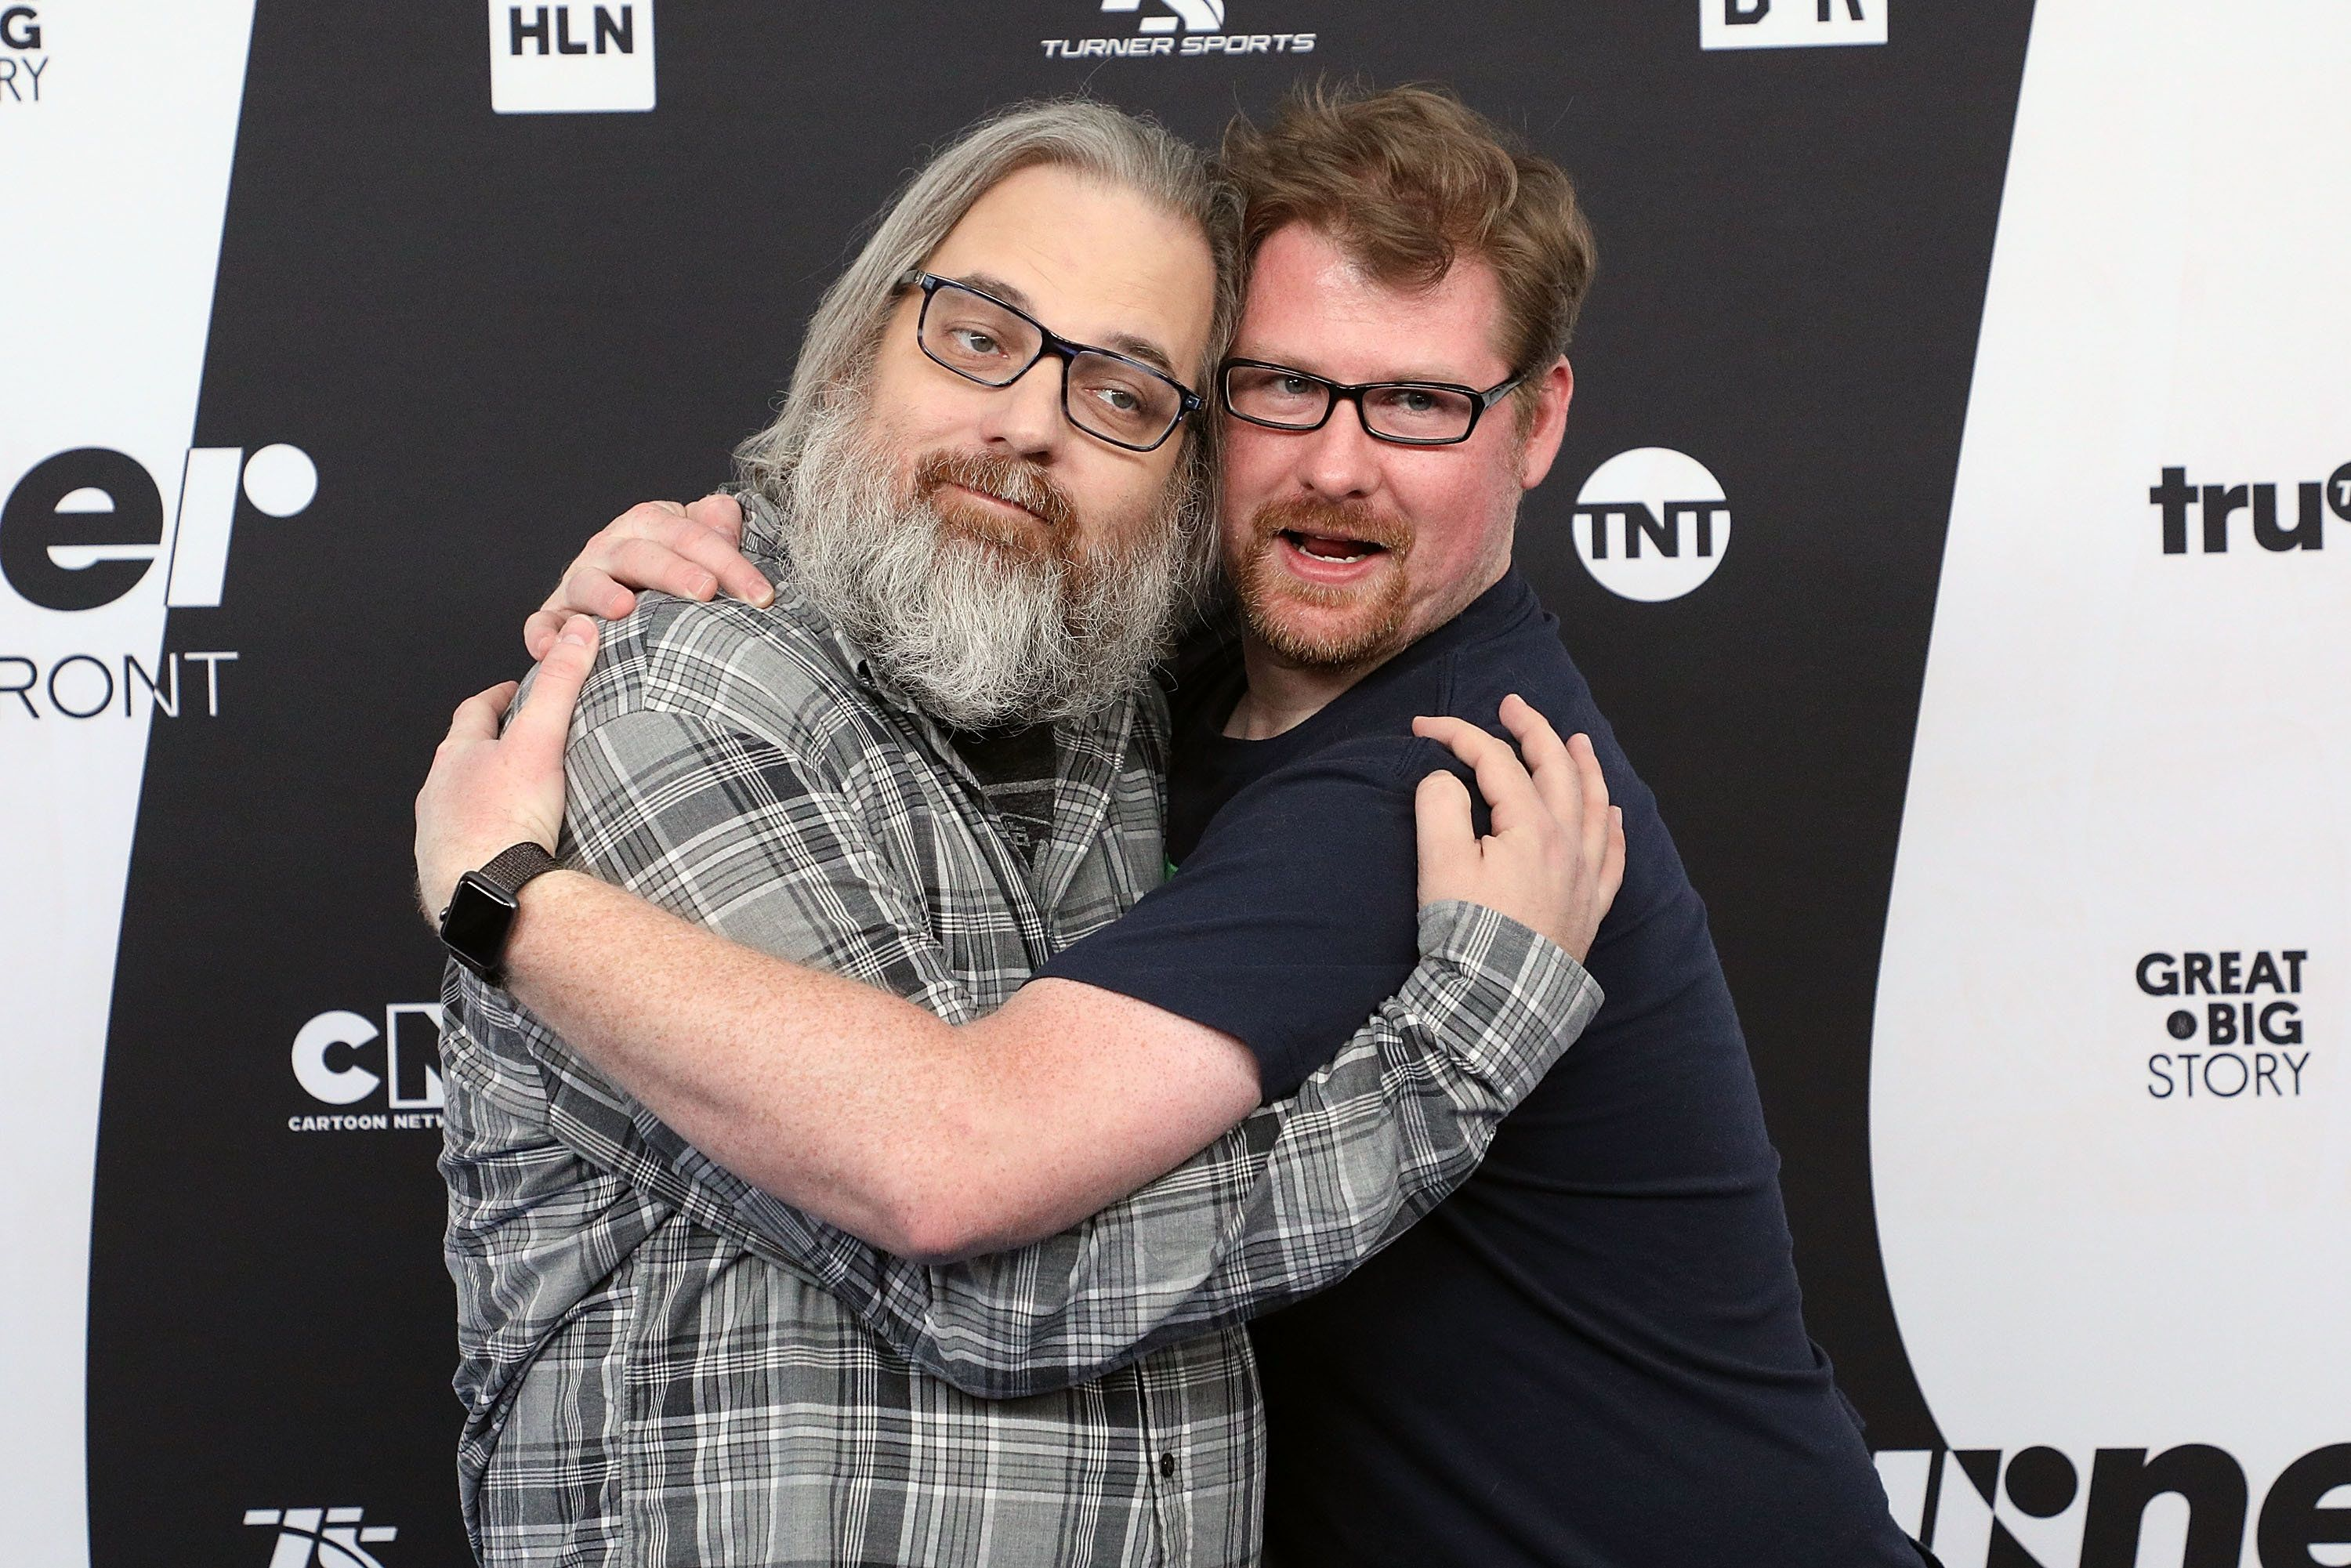 Dan Harmon and Justin Roiland at the 2018 Turner Upfront in New York on May 16.